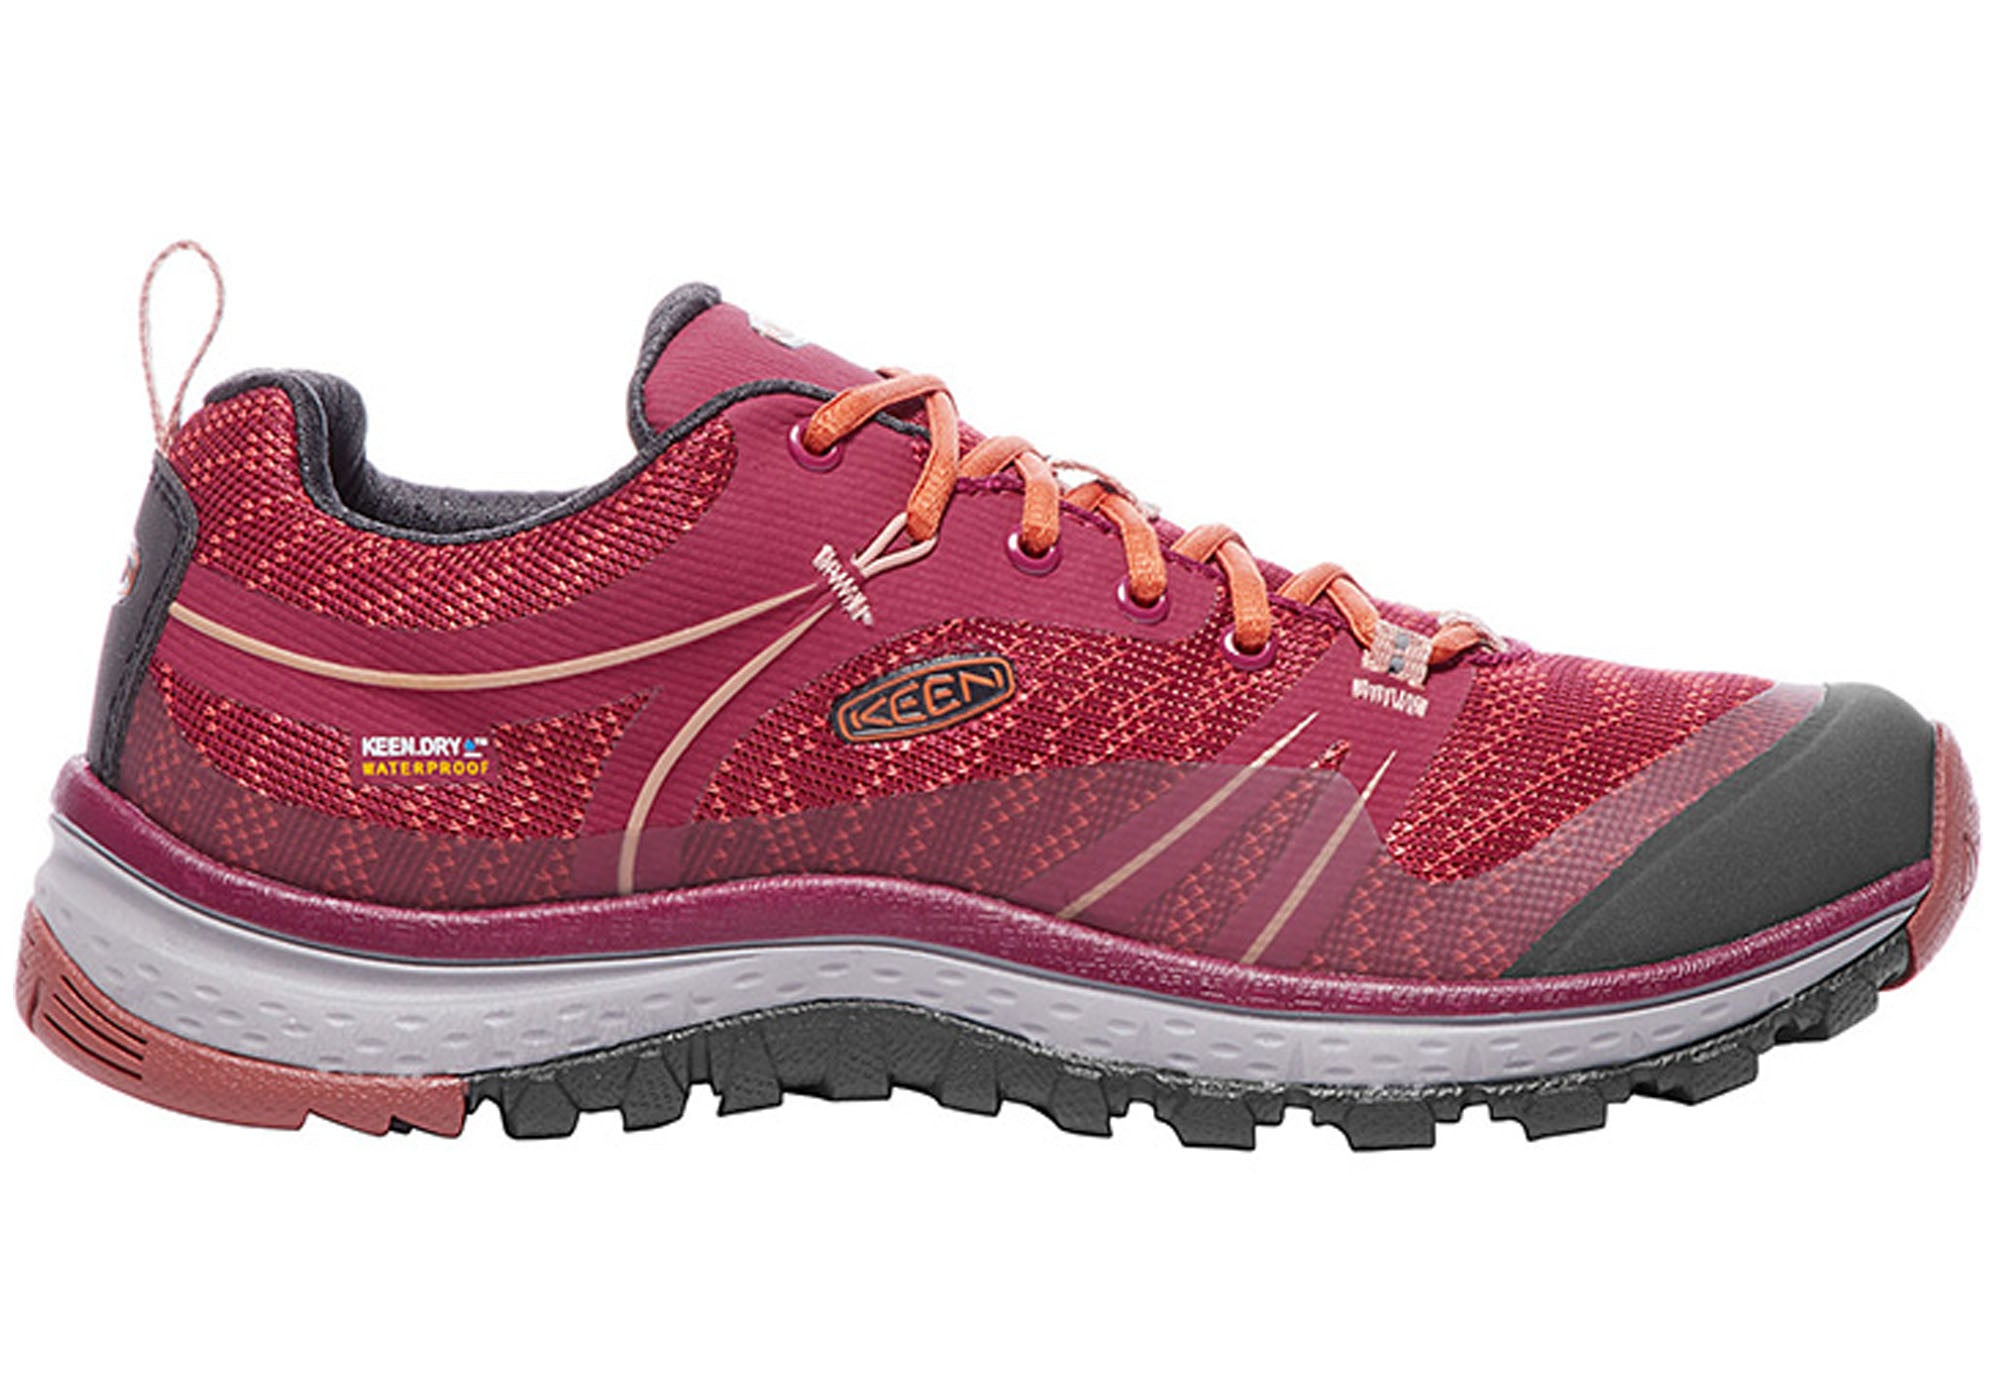 42b1e2f11ea Details about Brand New Keen Terradora Wp Waterproof Womens Comfortable  Hiking Shoes